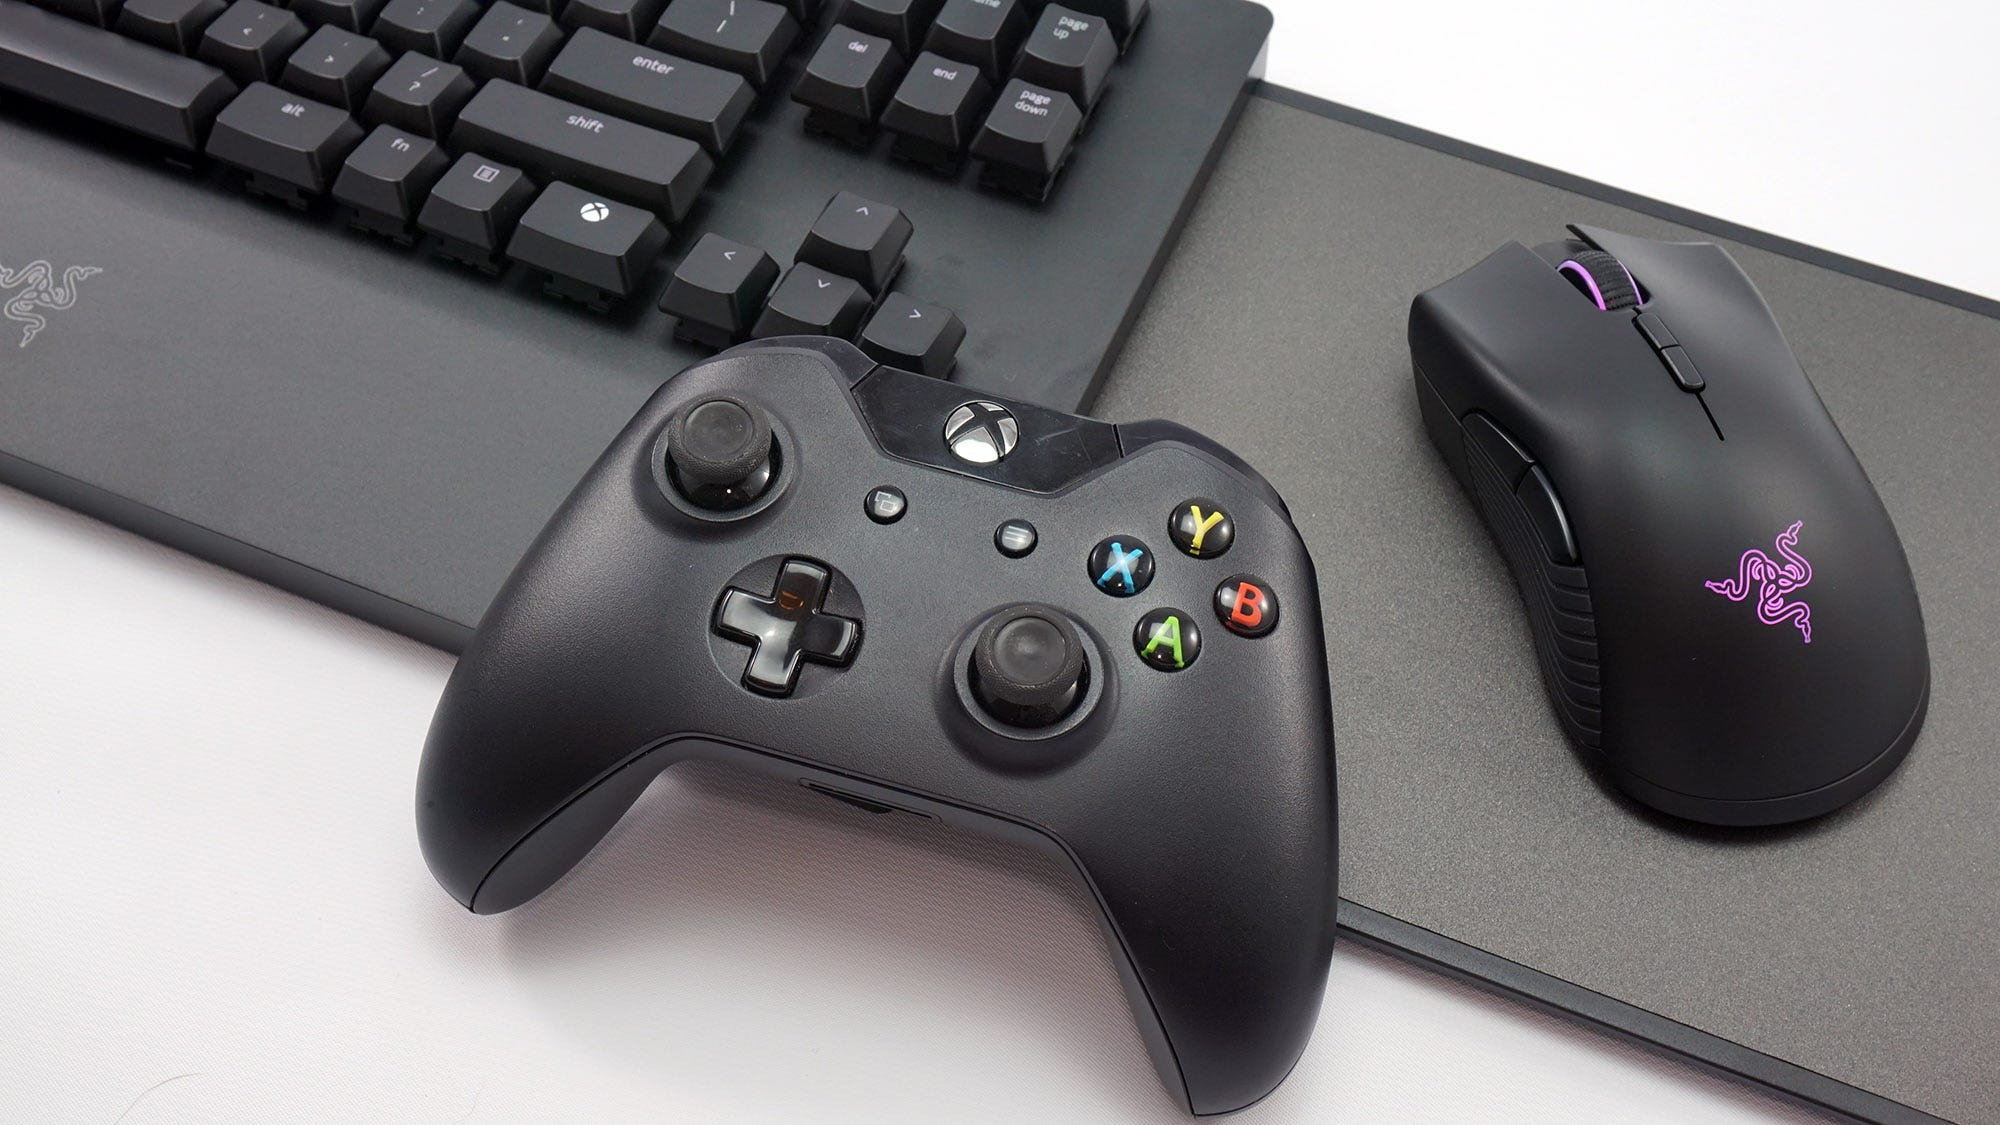 Close-up of the Turret mousepad, mouse, and a game controller with the Turret keyboard in the background.